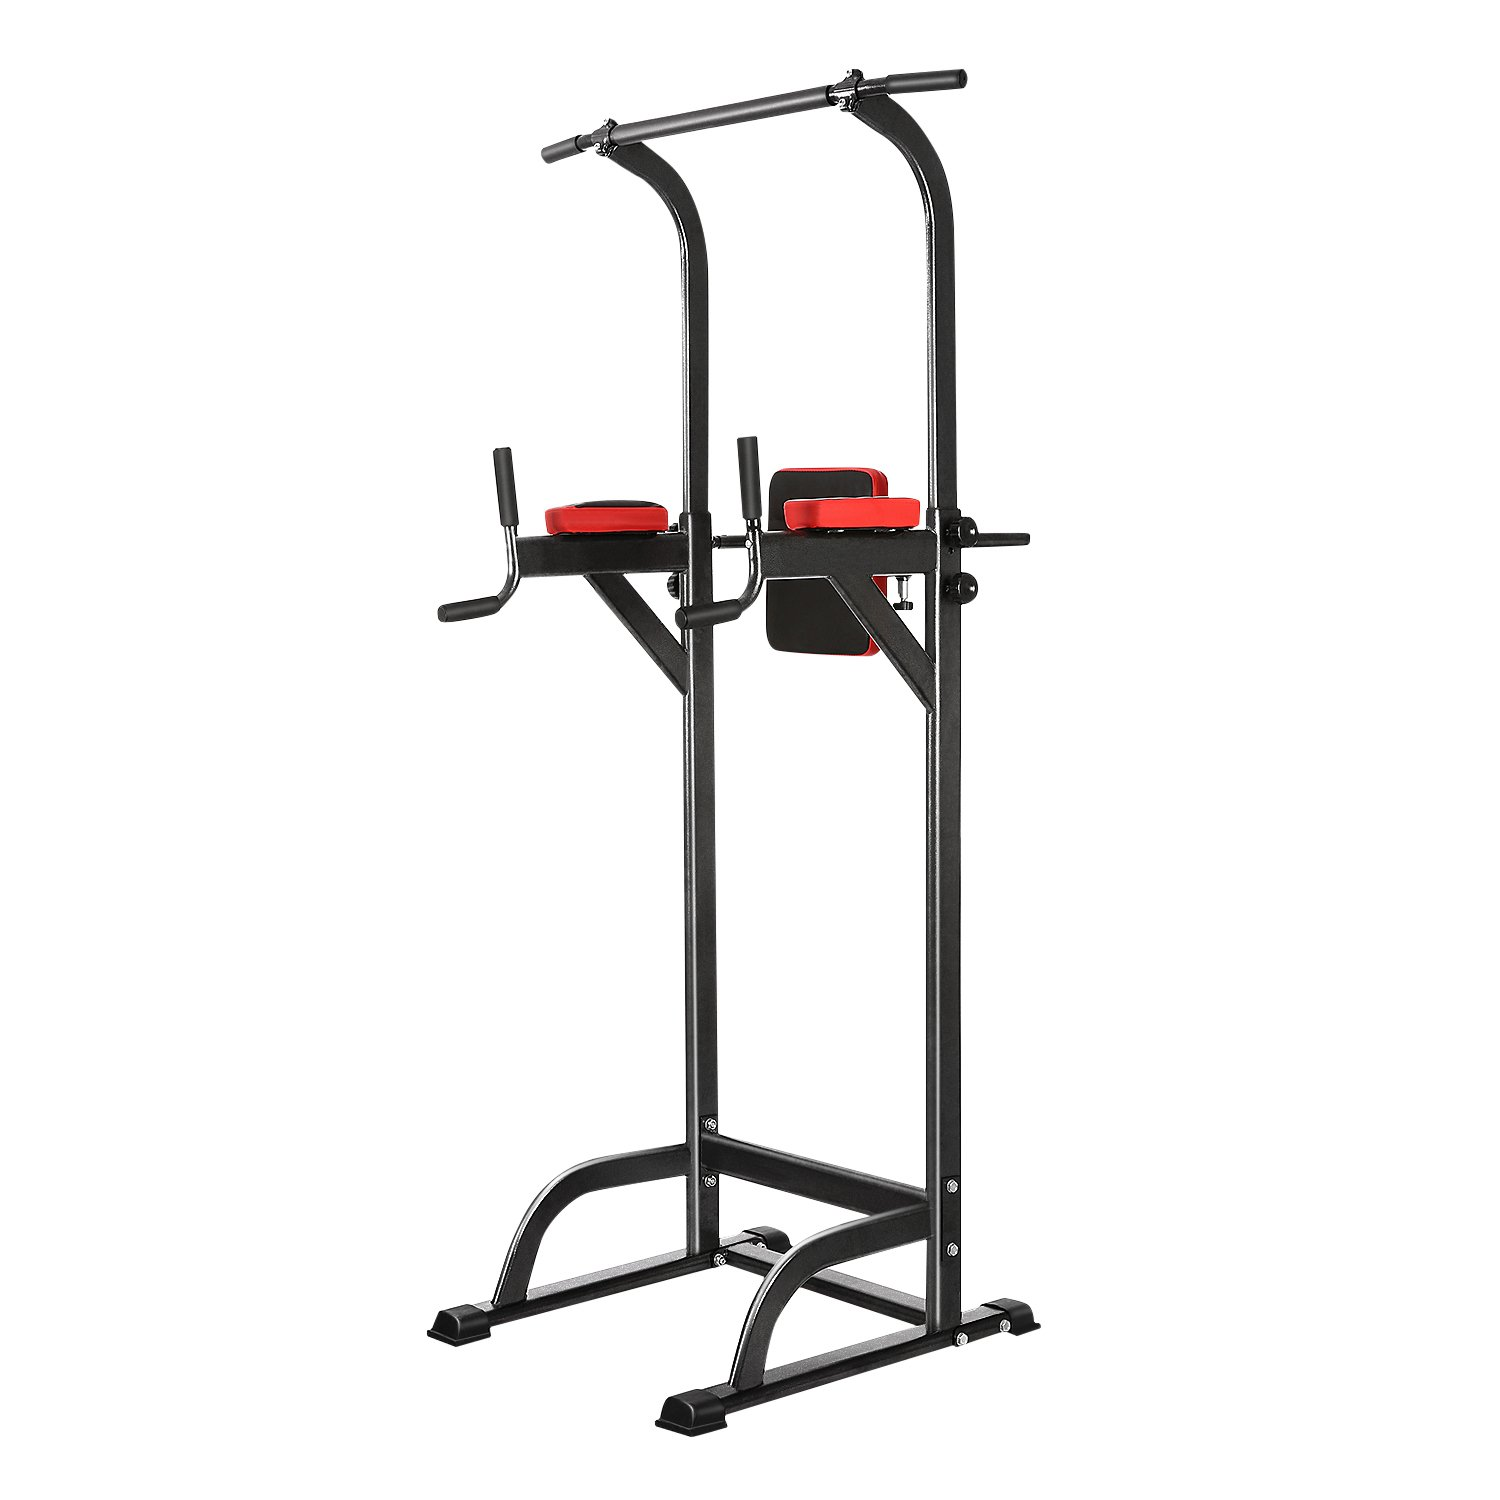 Sports Power Tower Adjustable Pull Up Bar Tower for Home Gym Strength Training Fitness Equipment [US Stock]